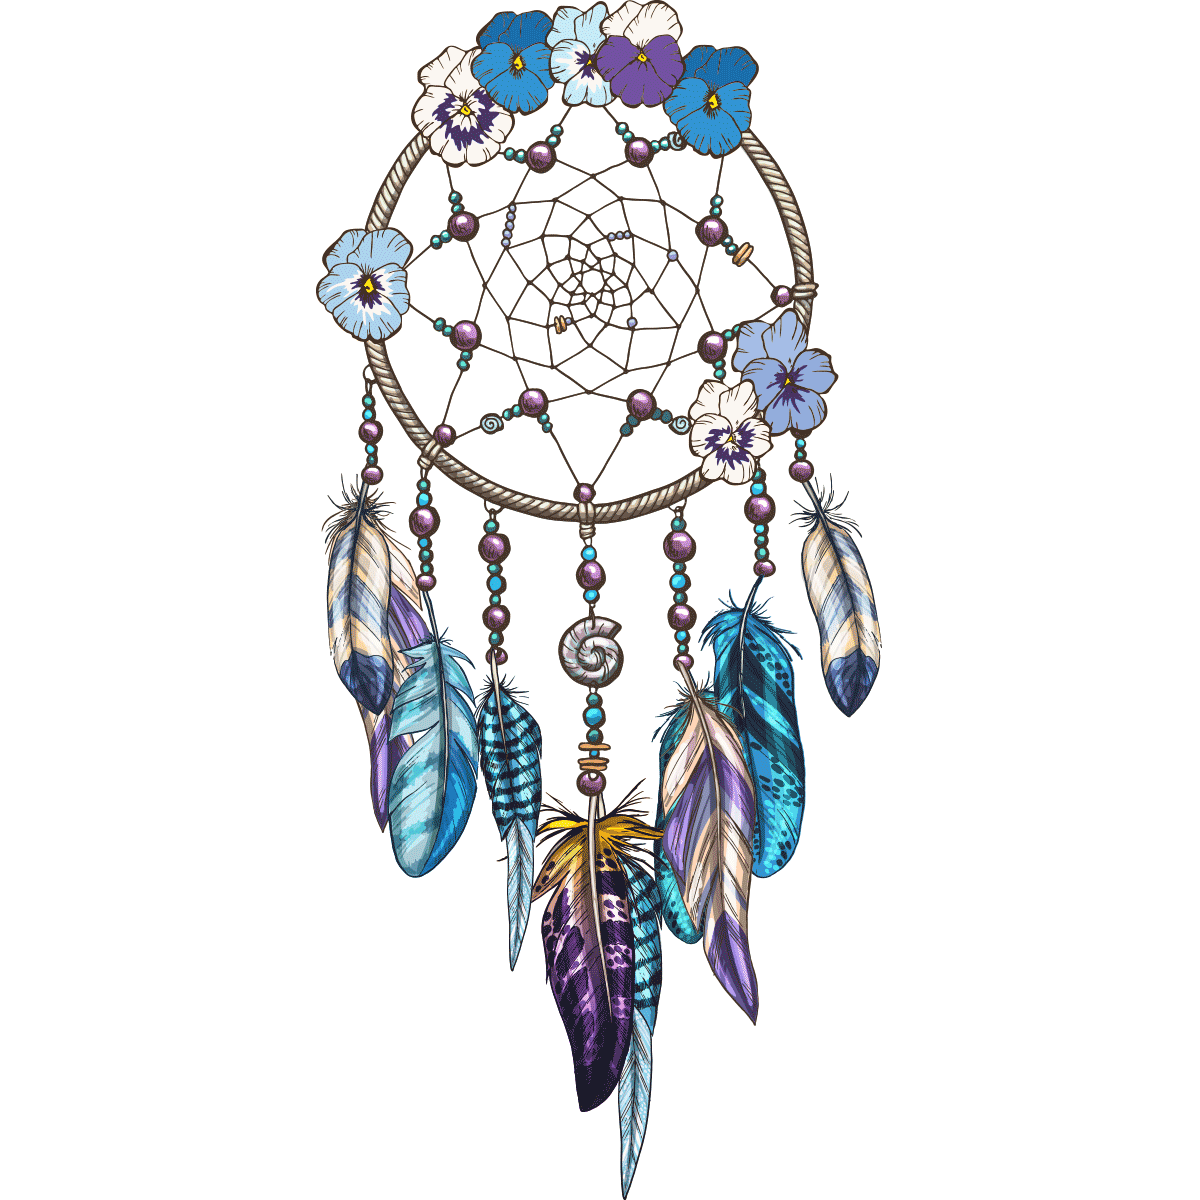 Dreamcatcher Ornament Illustration Vector Graphics Feather PNG Image